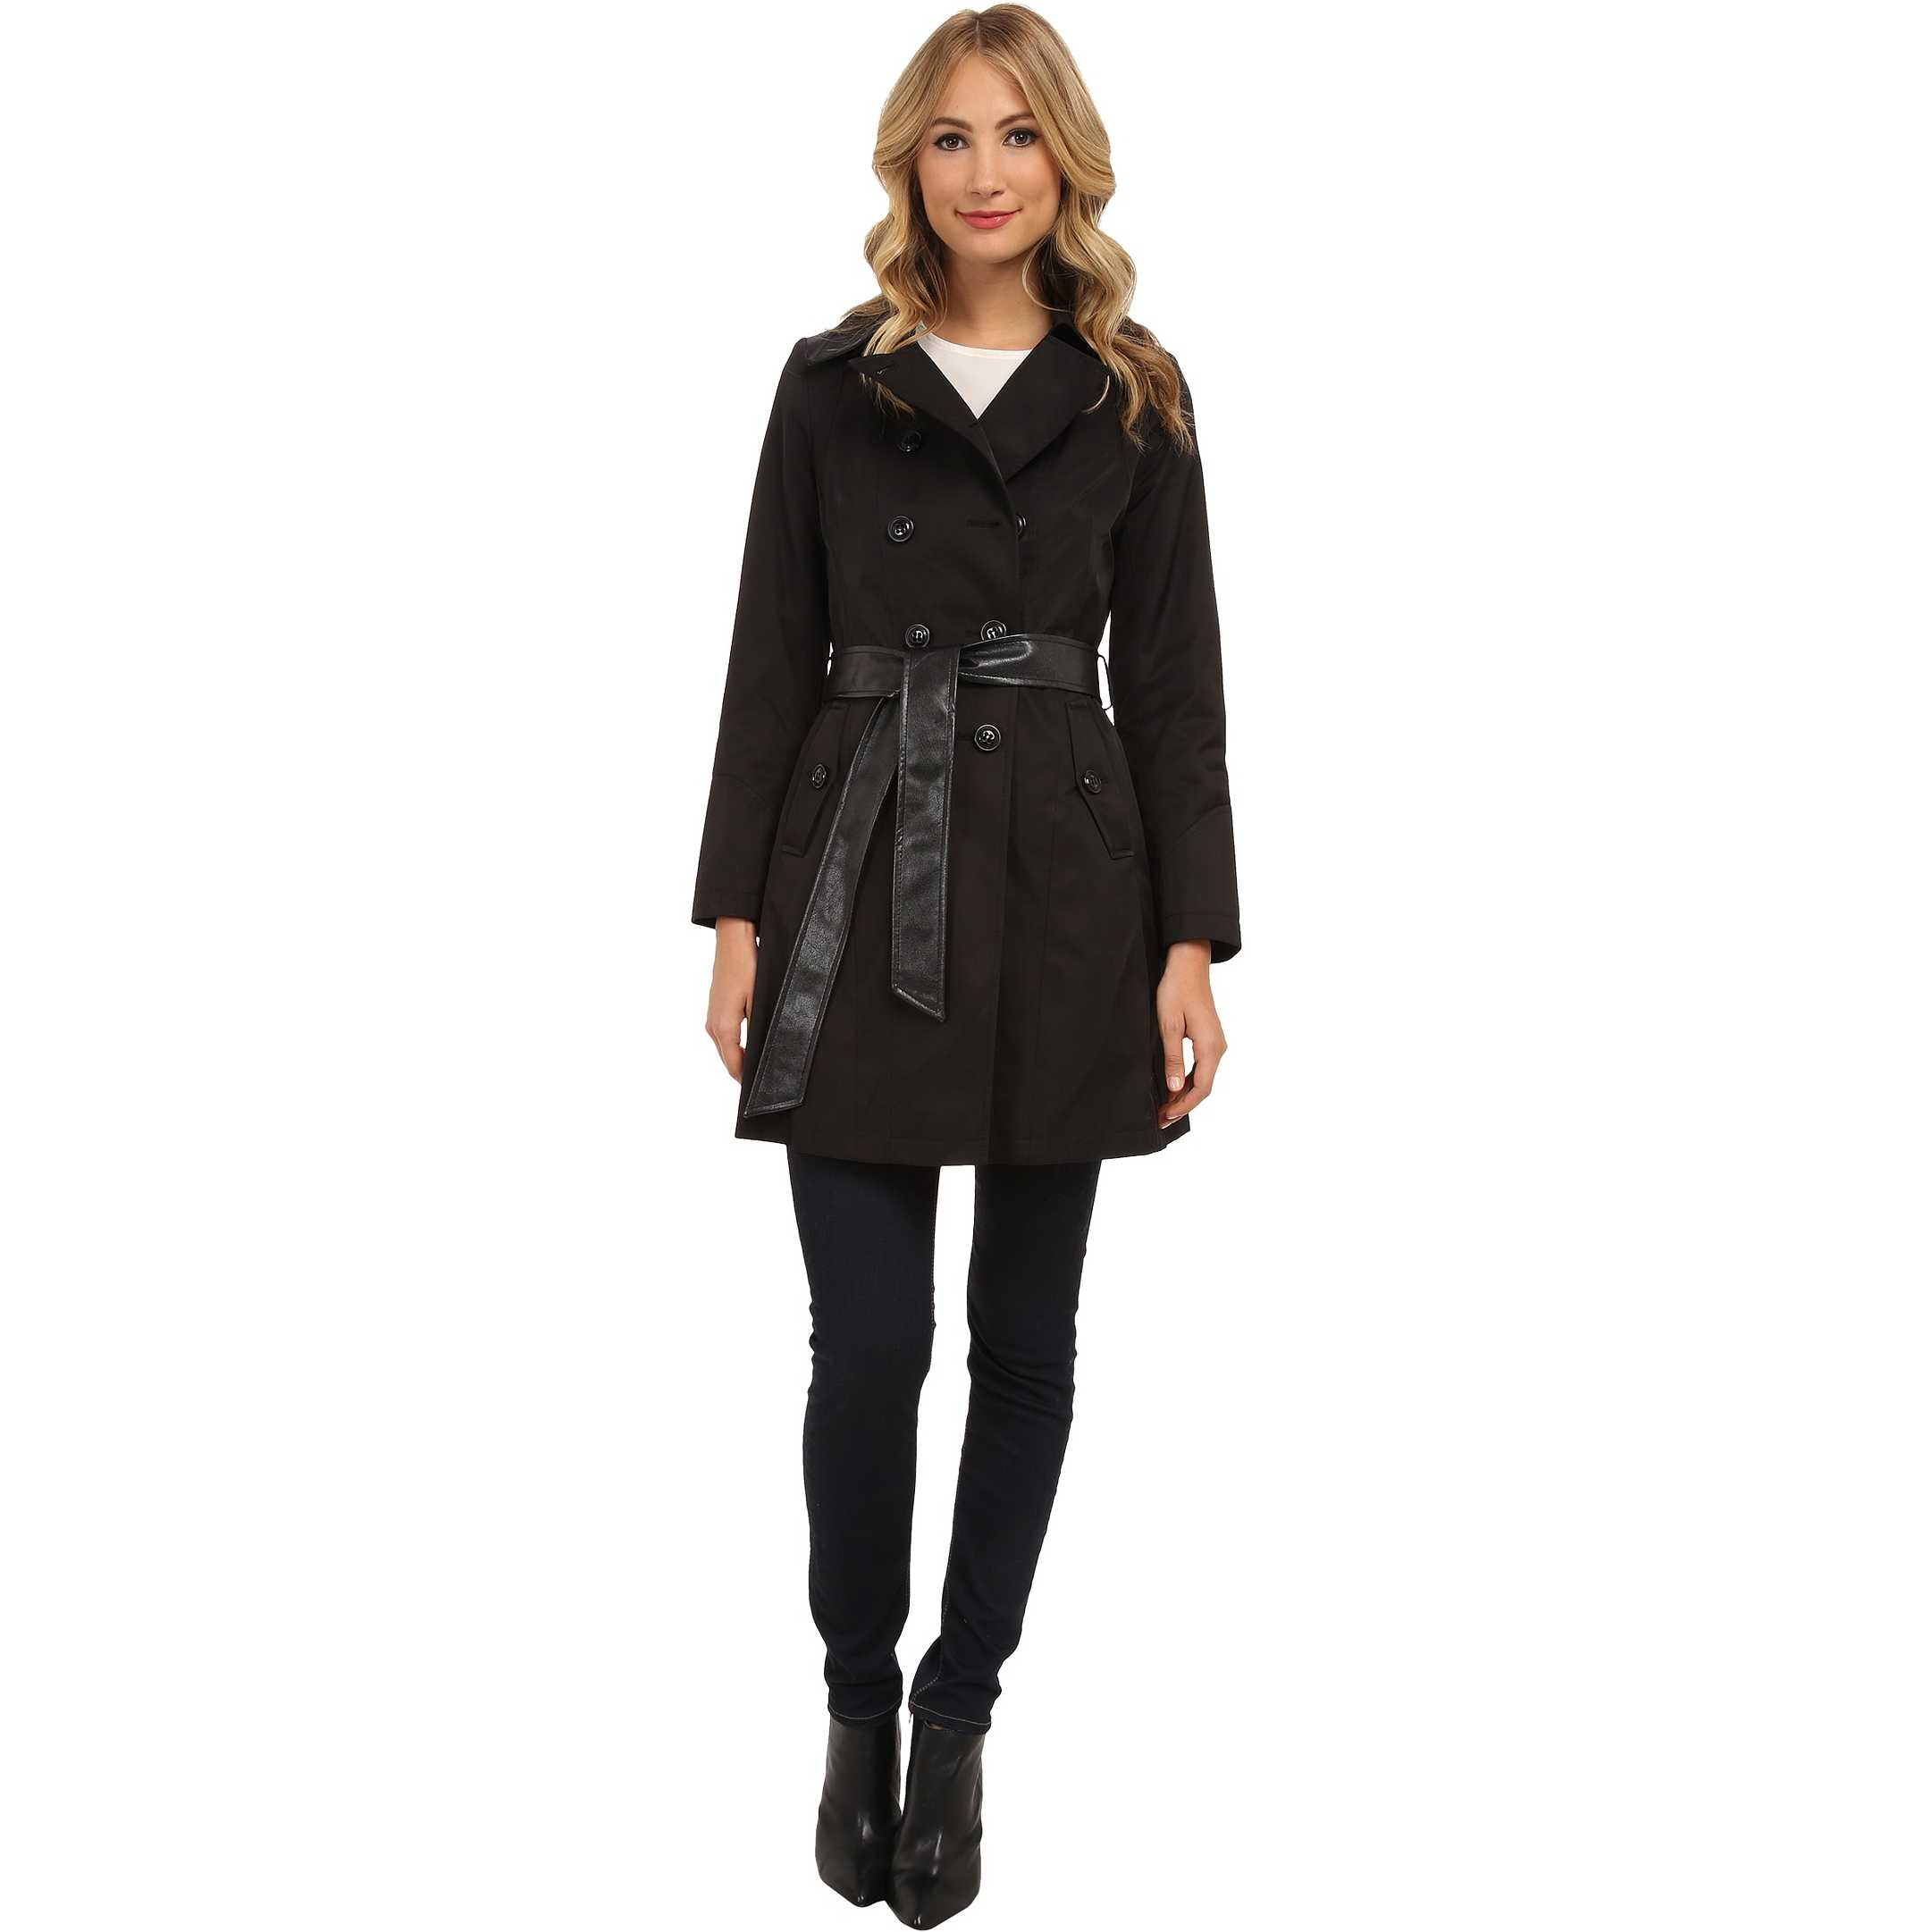 DKNY Double Breasted Belted Trench Coat w/ Faux Leather Trim 06200-Y4 Black trench dama